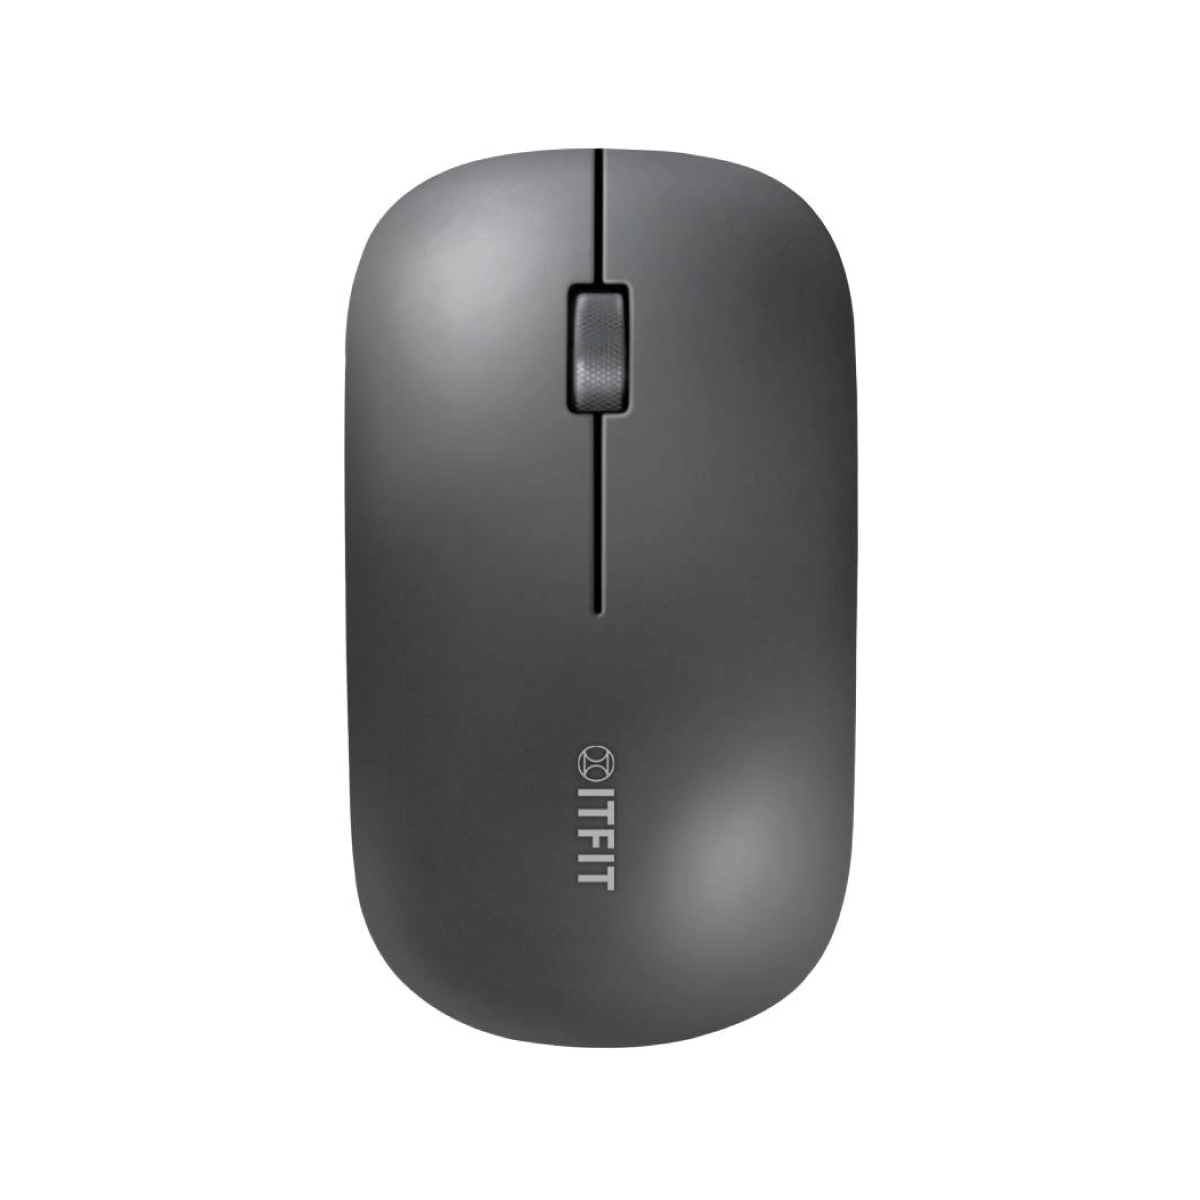 Dual Mode Mouse